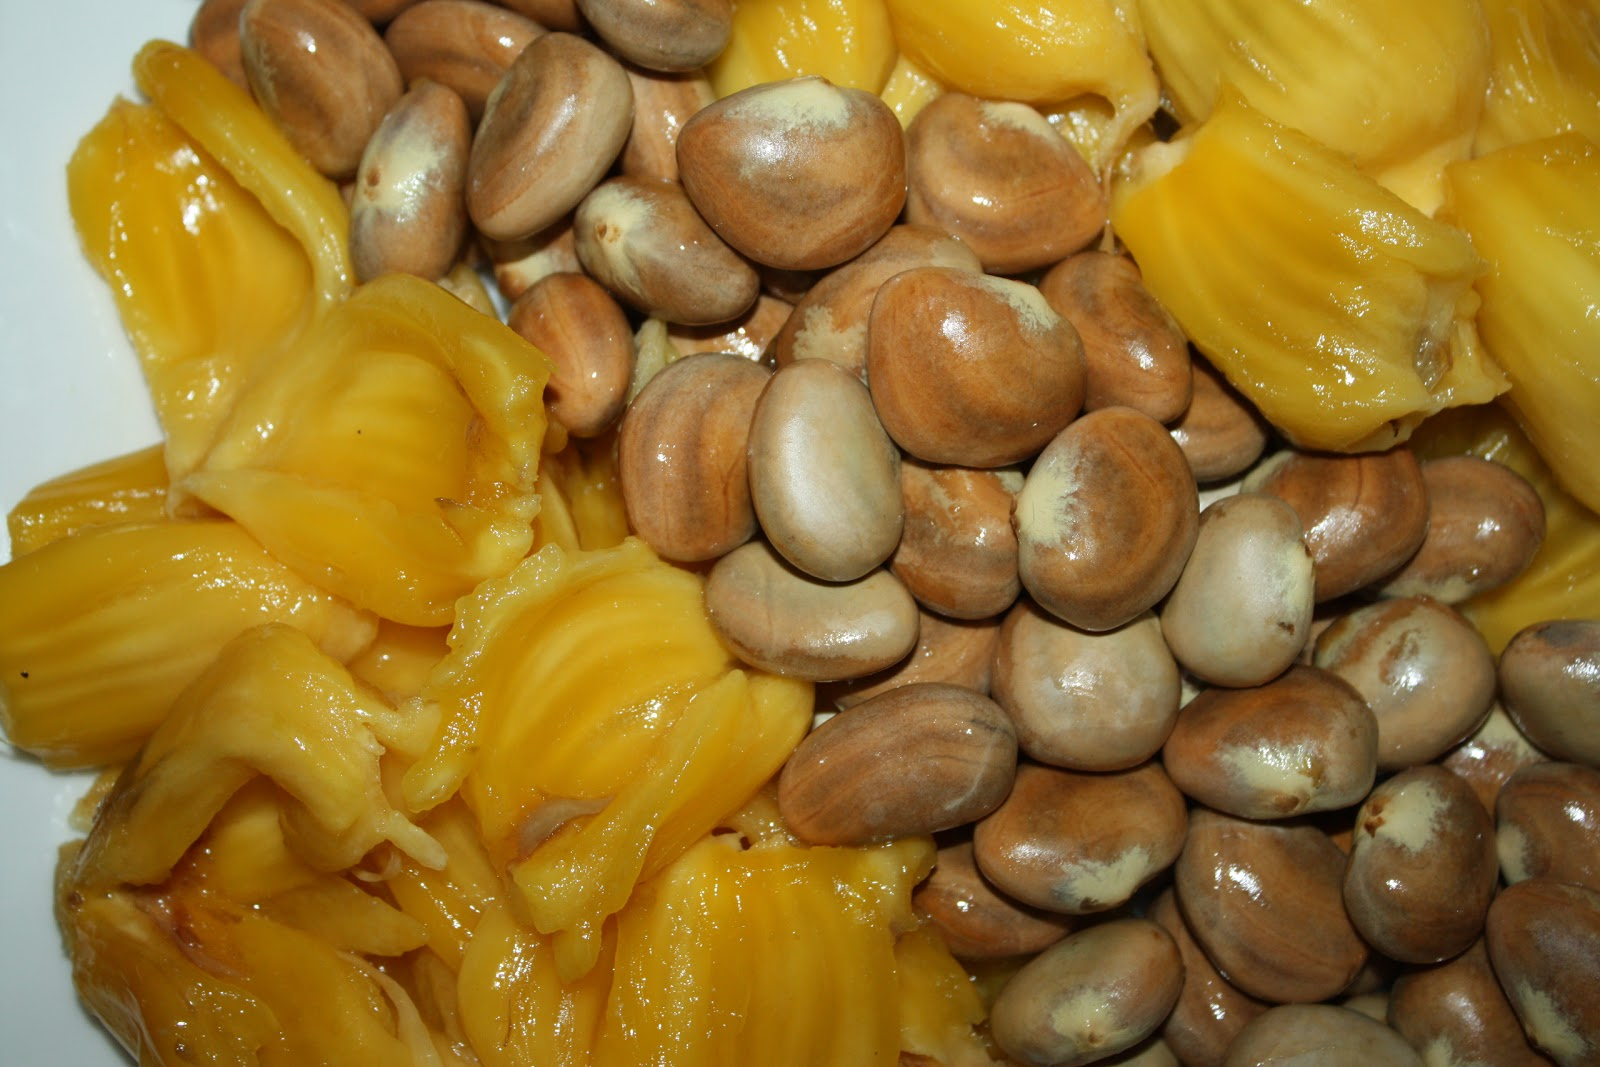 in jackfruit spines are modifications of